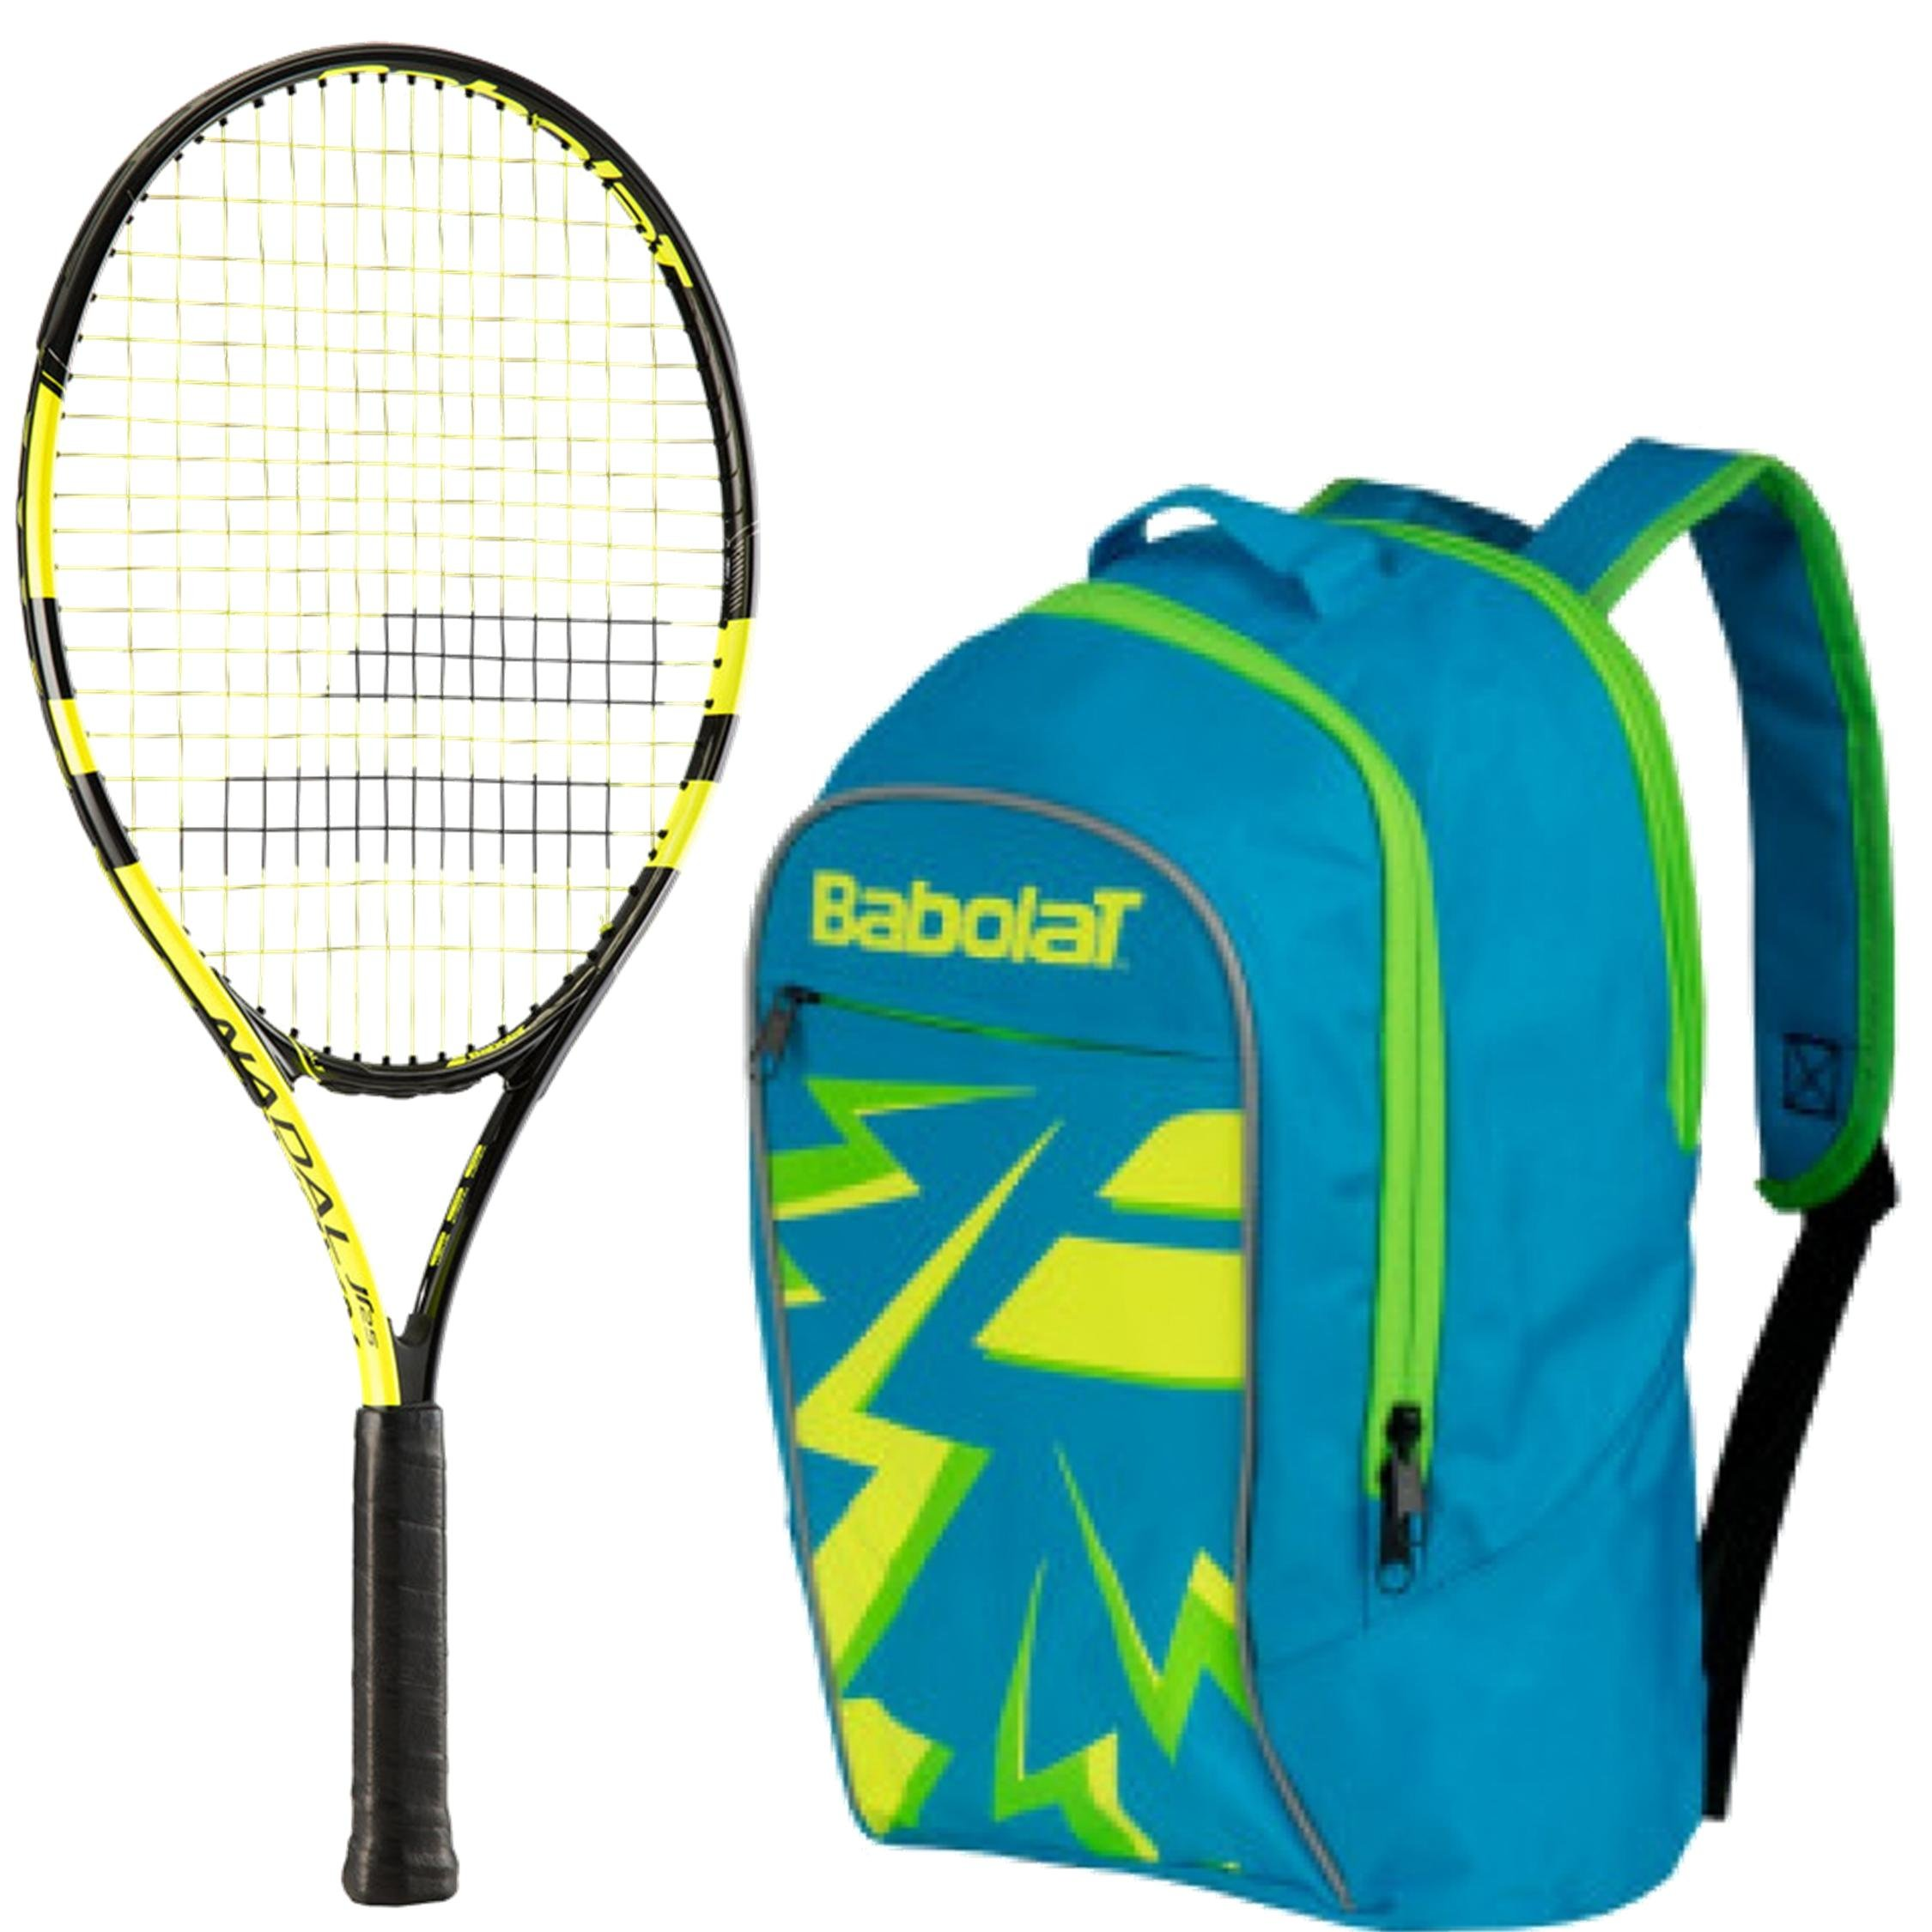 Babolat Nadal Junior 19'' Entry Level Performance Tennis Racquet (Yellow/Black) Set or Kit Bundled with Blue Child's Club Tennis Backpack (Perfect for Back to School)